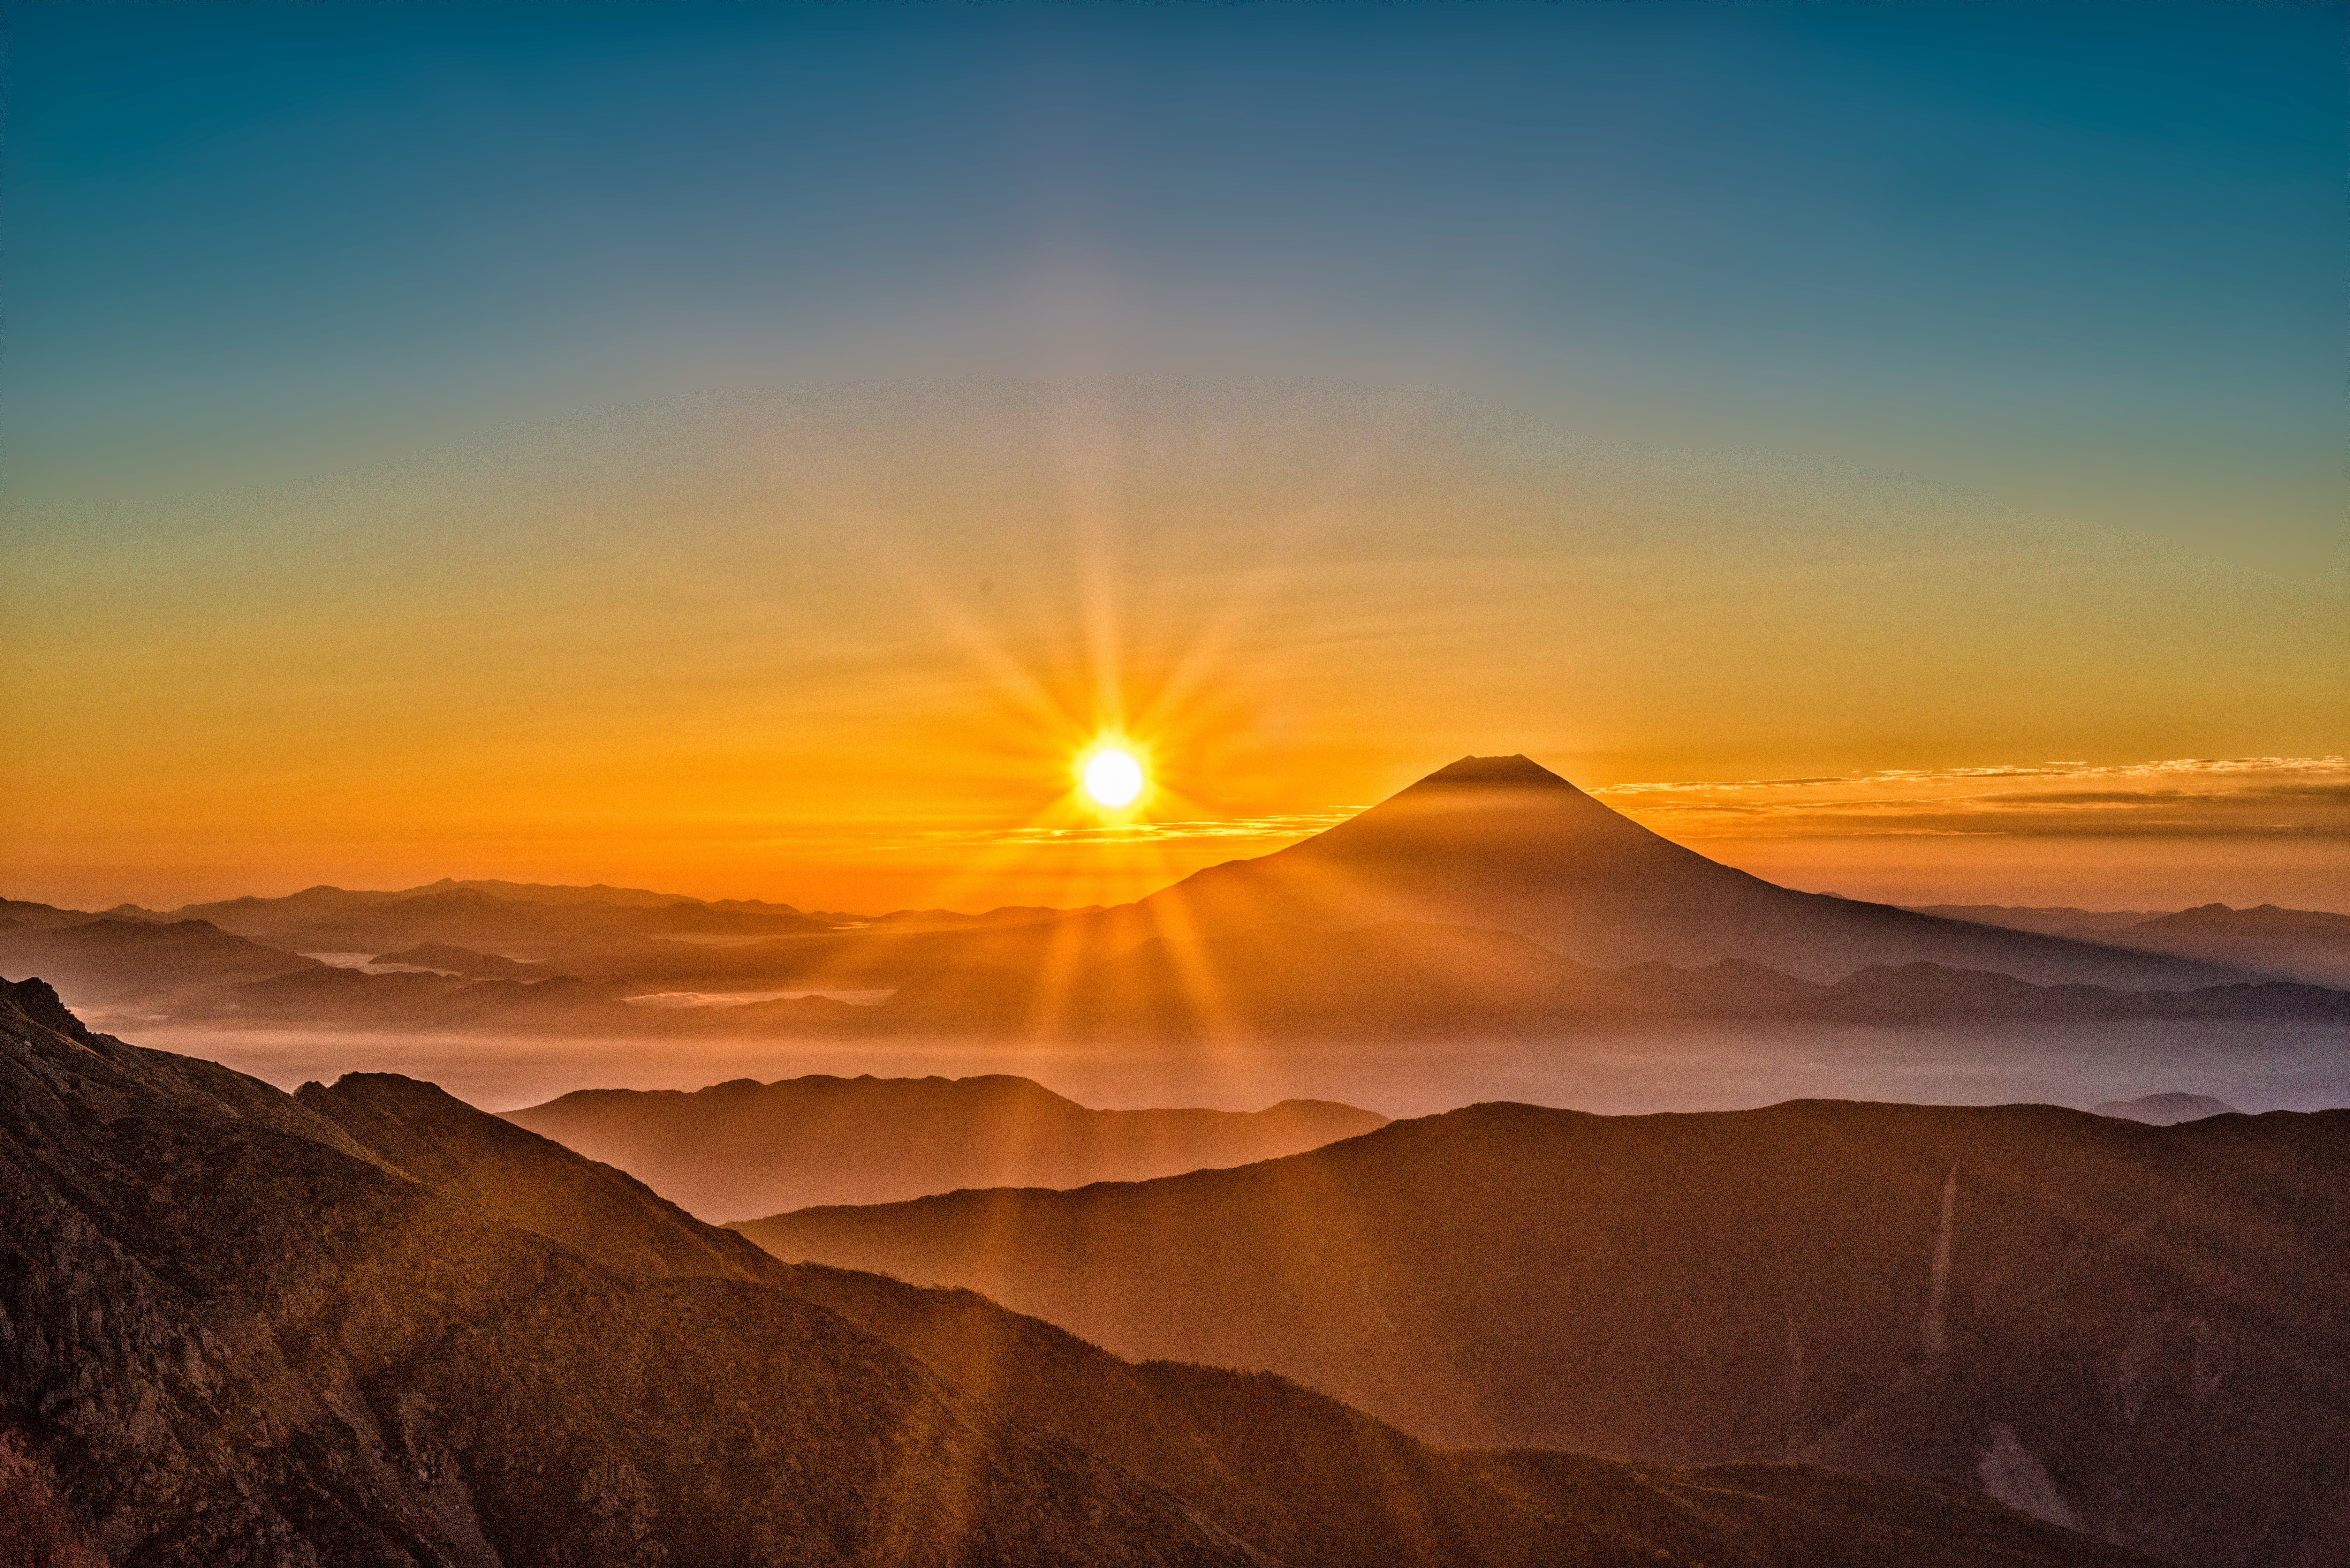 sunrise over the mount fuji in the mountain landscape japan free